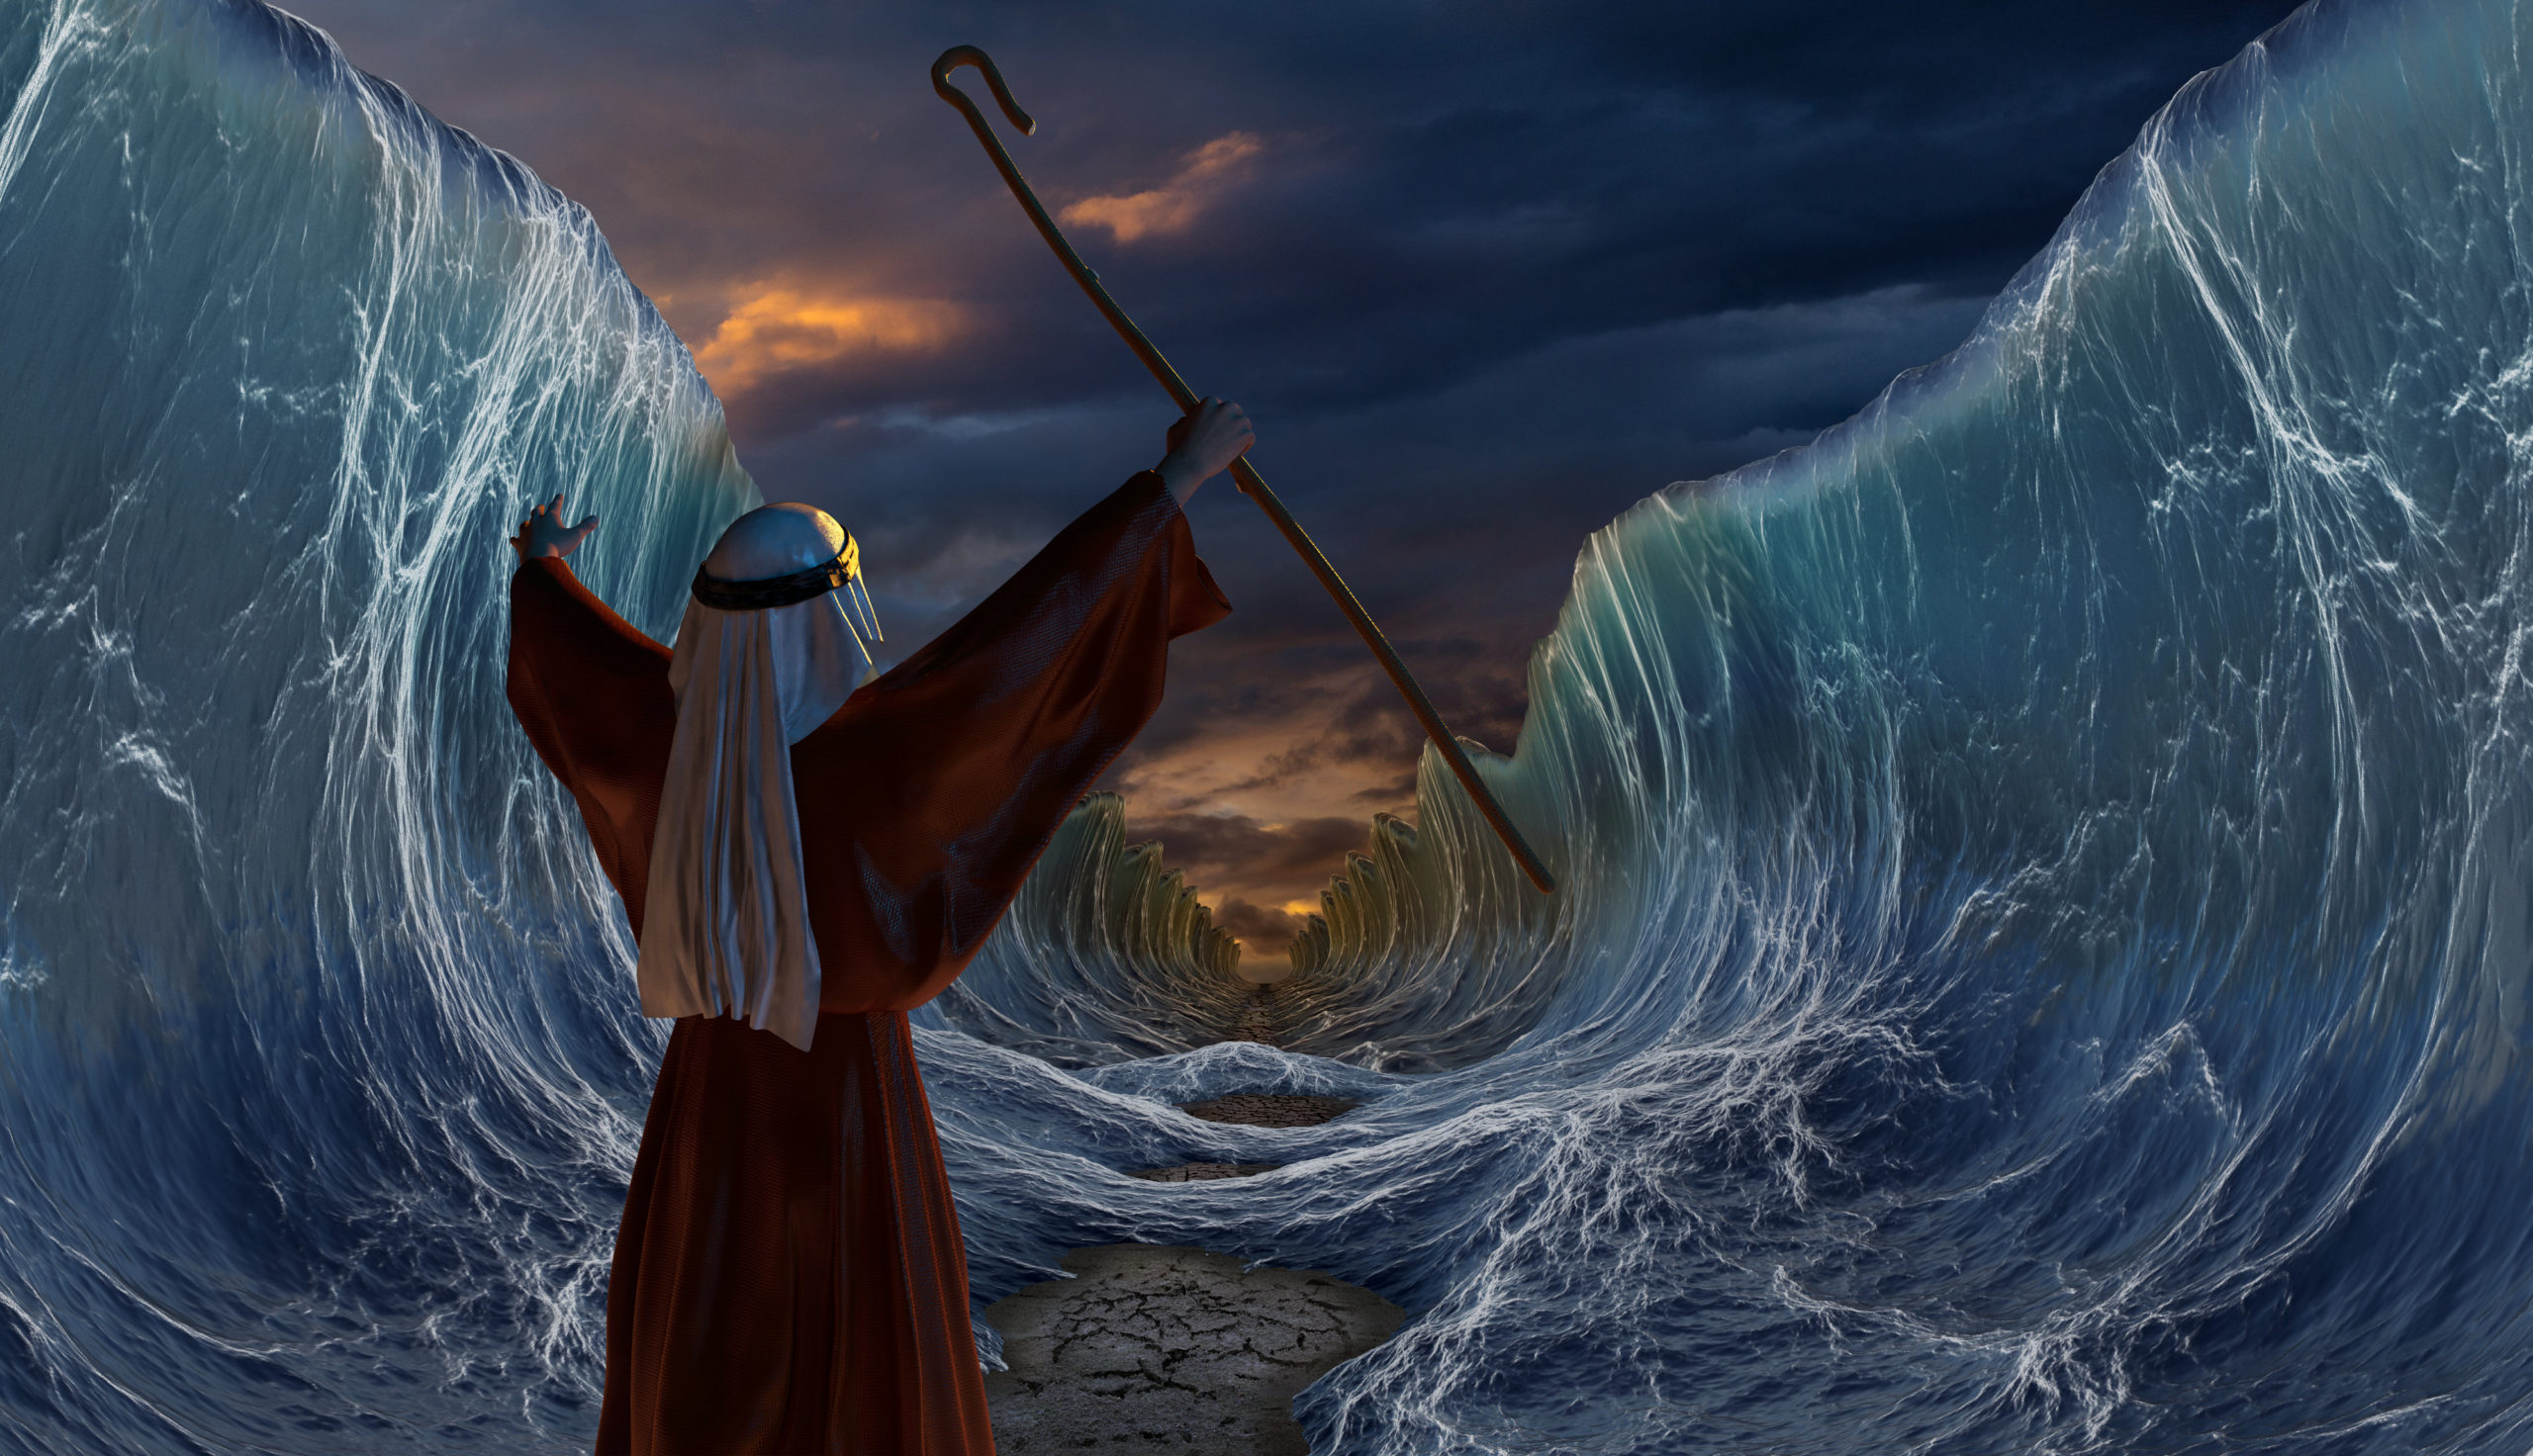 Part of biblical narrative - escape Israelites. Big waves as open ocean under the dramatic sky as one man stands in the forground raising bouth his arms with a rod in his right hand. 3D render illustration.